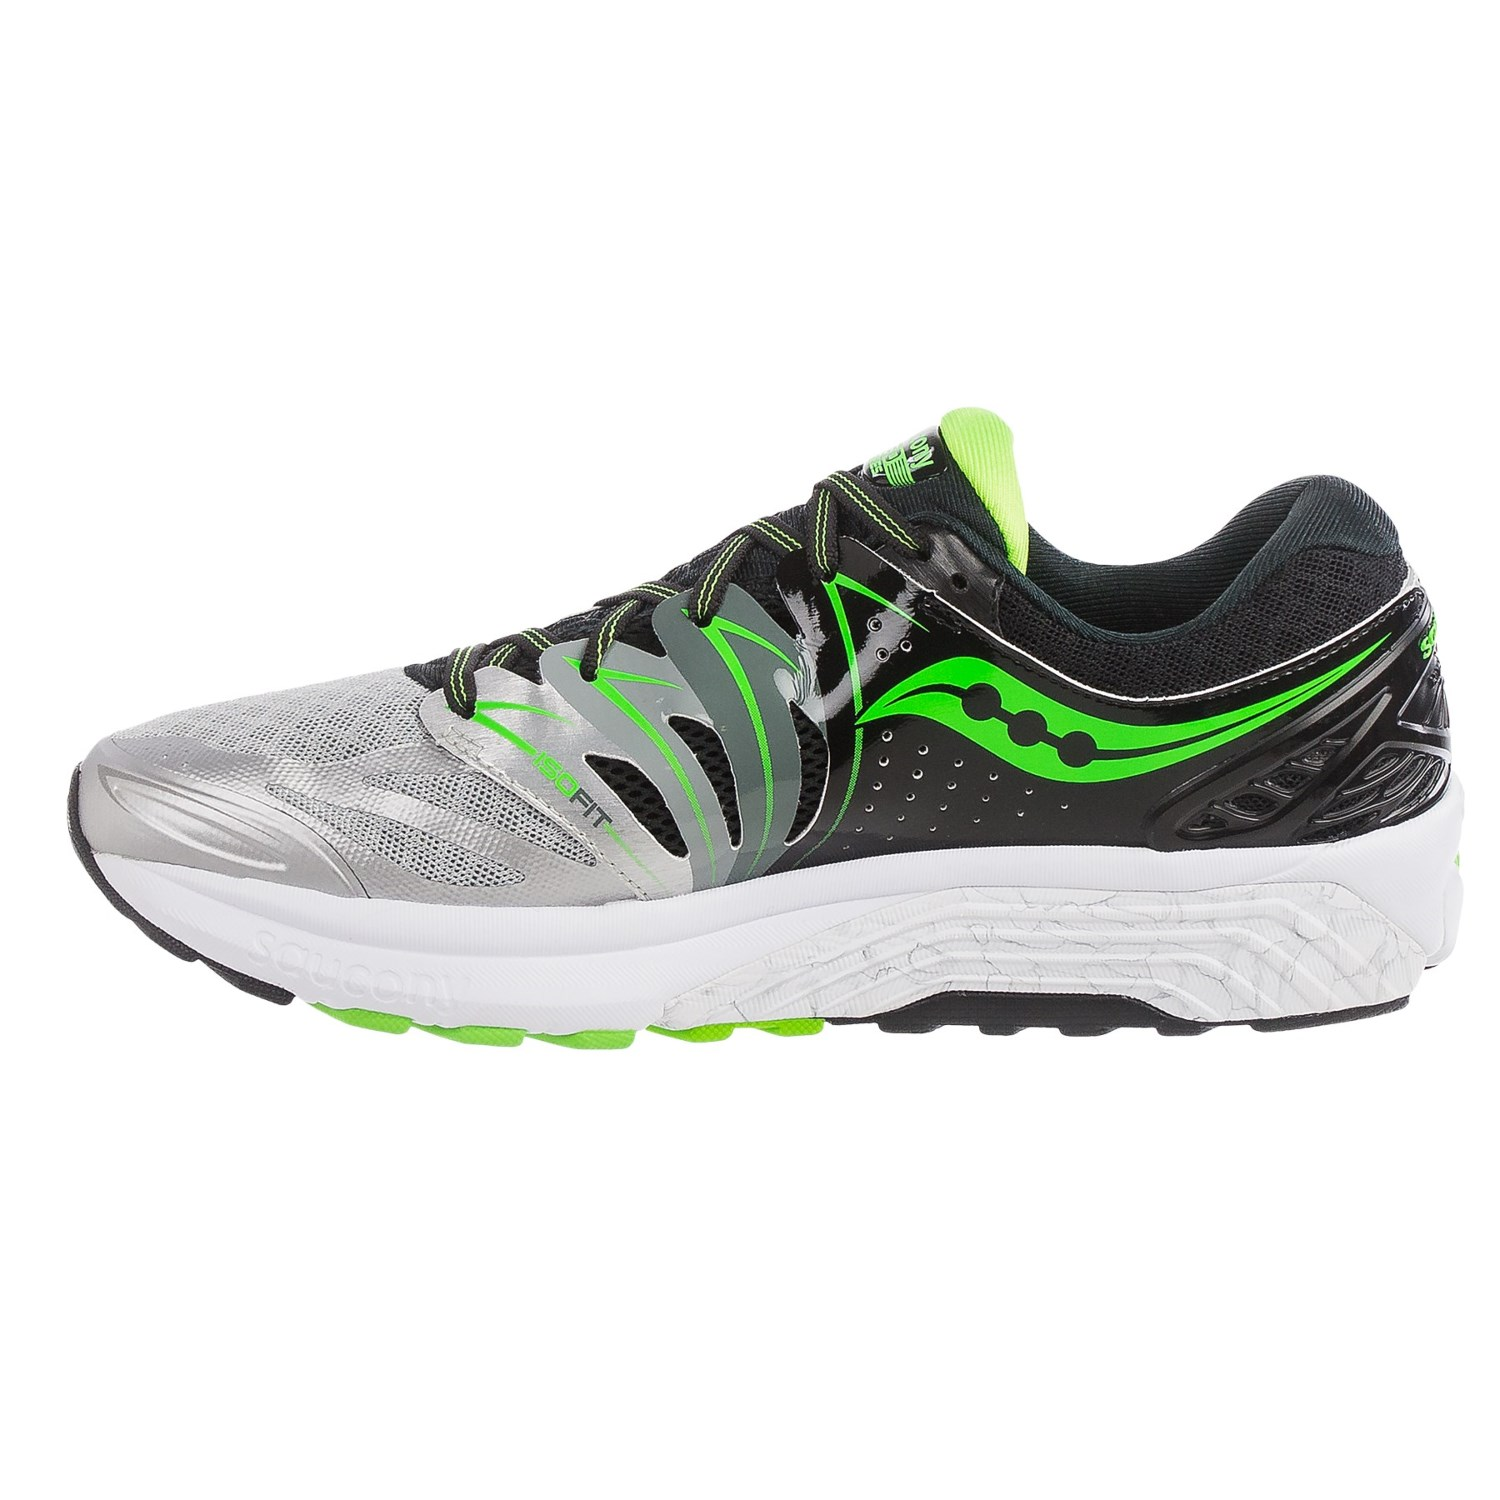 Buy hurricane shoes   Up to OFF76% Discounted 94addec9897